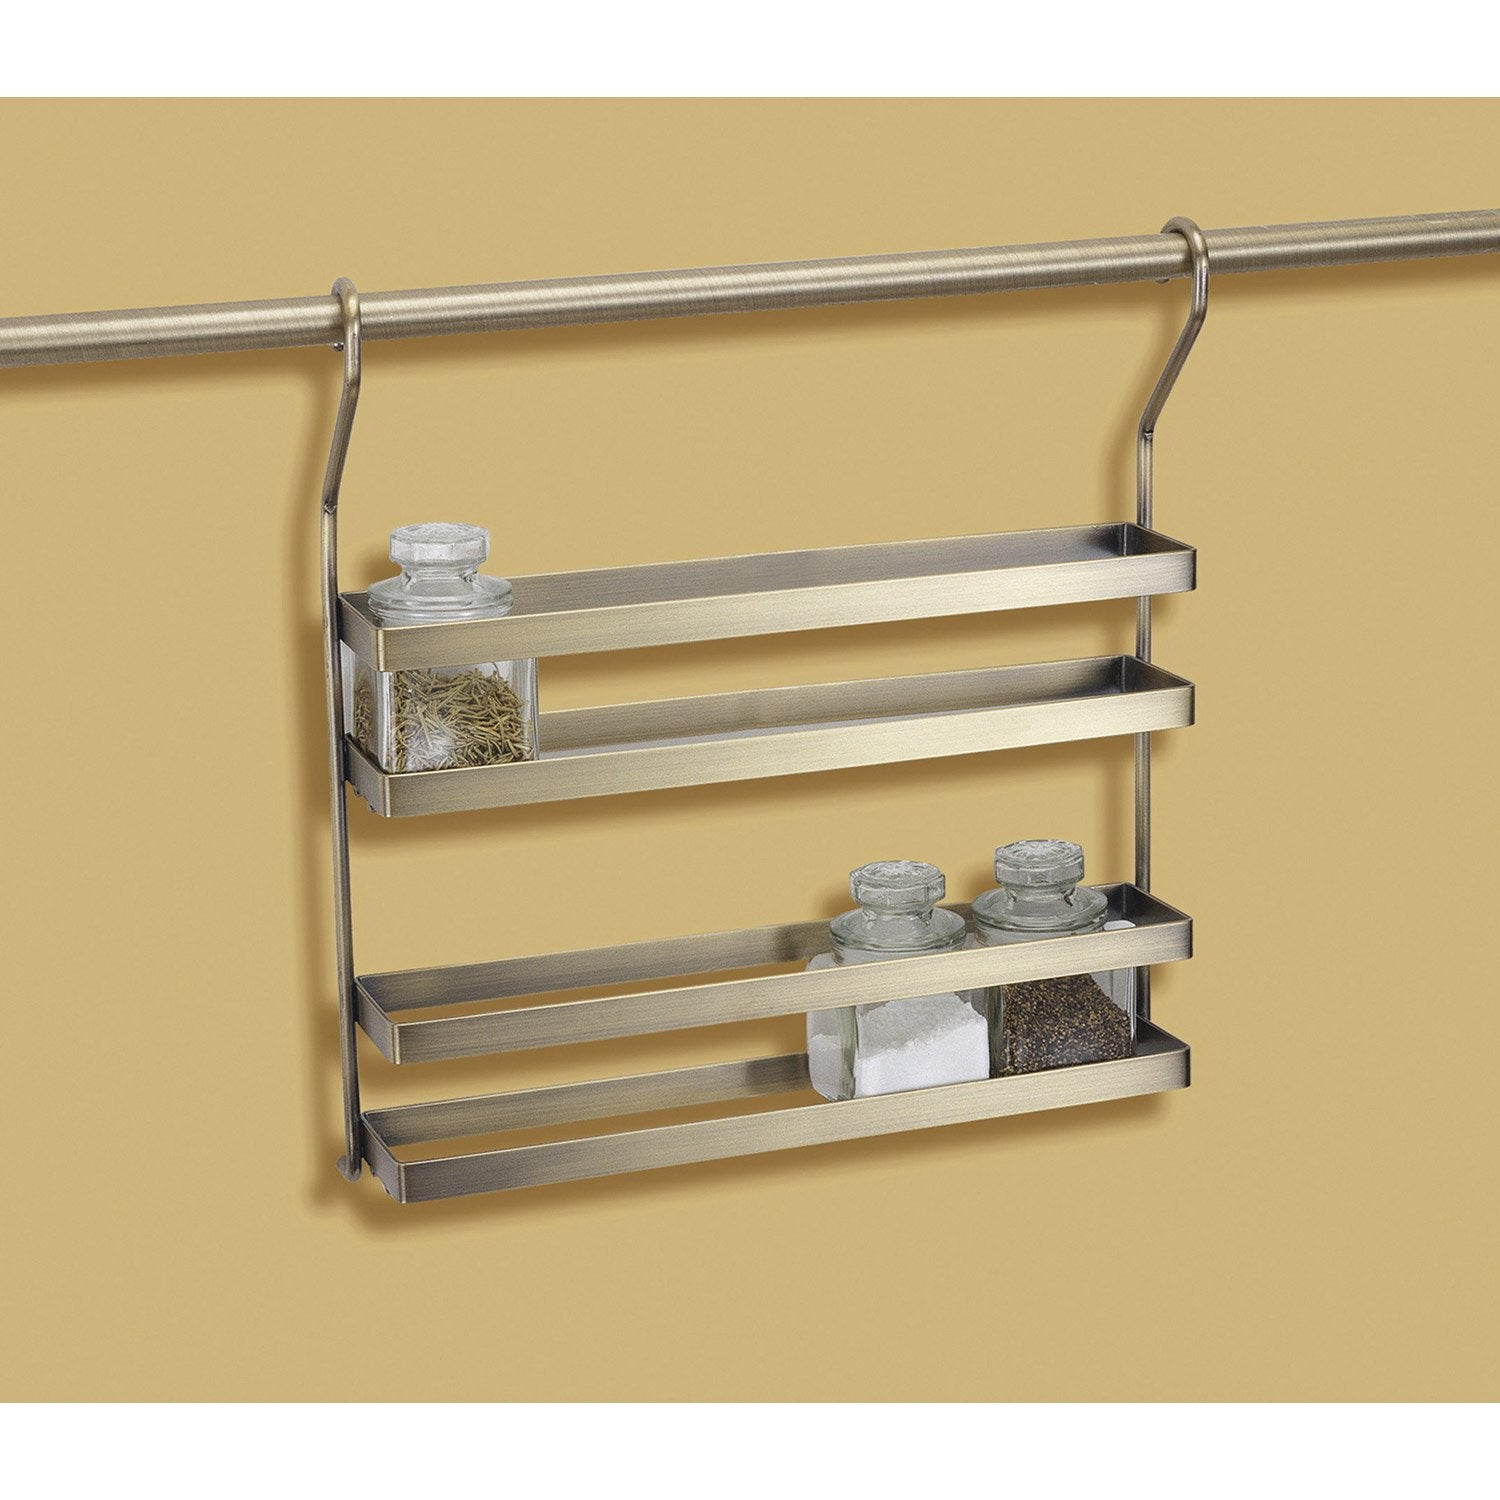 Double tag re pour barre de cr dence m tal leroy merlin - Etagere sur mesure leroy merlin ...